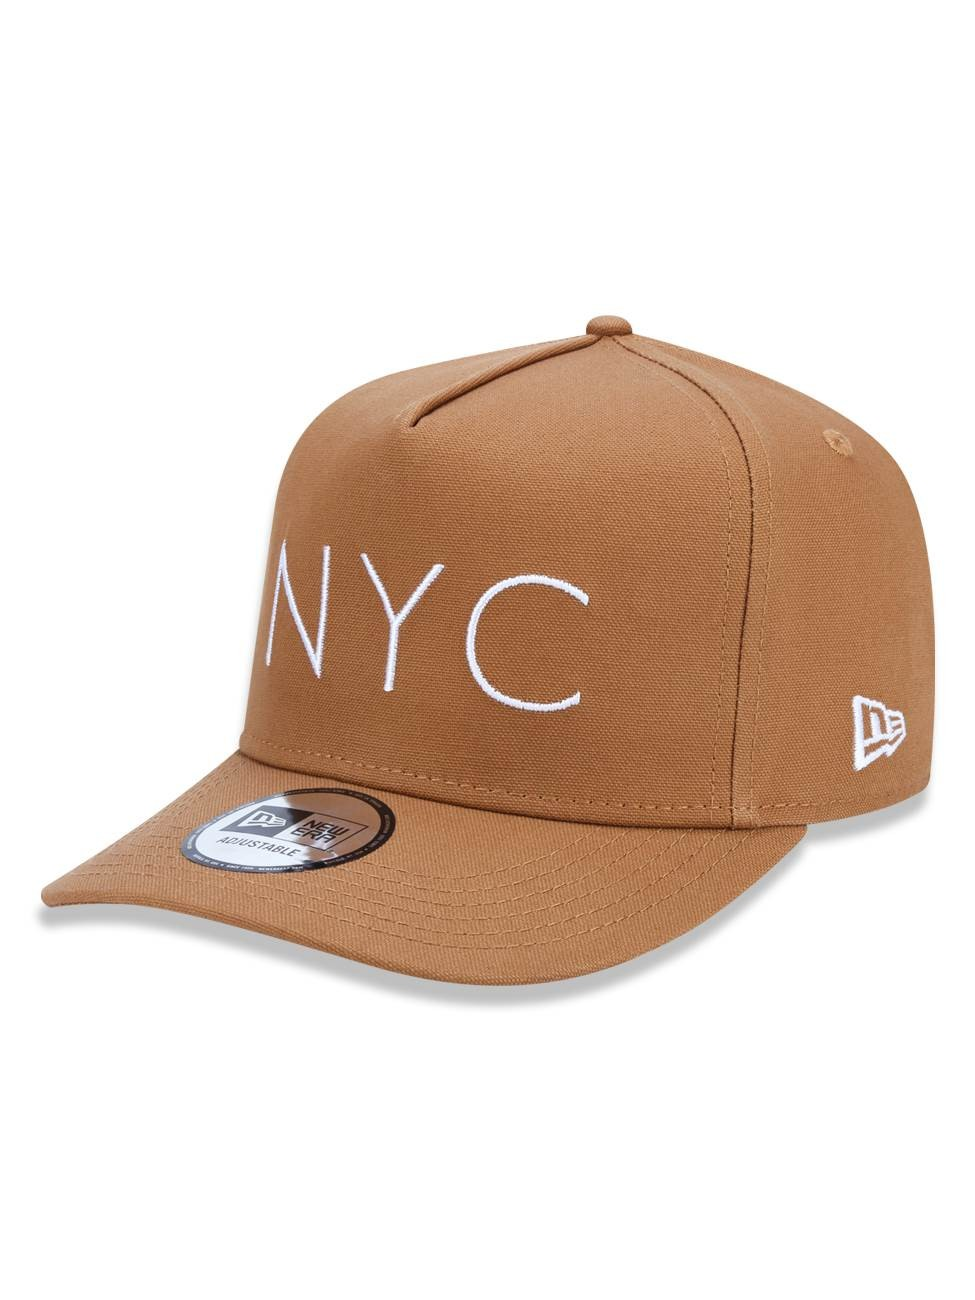 BONÉ NEW ERA NEW YORK YANKEES NYC TAN CARAMELO - NEV17BON400